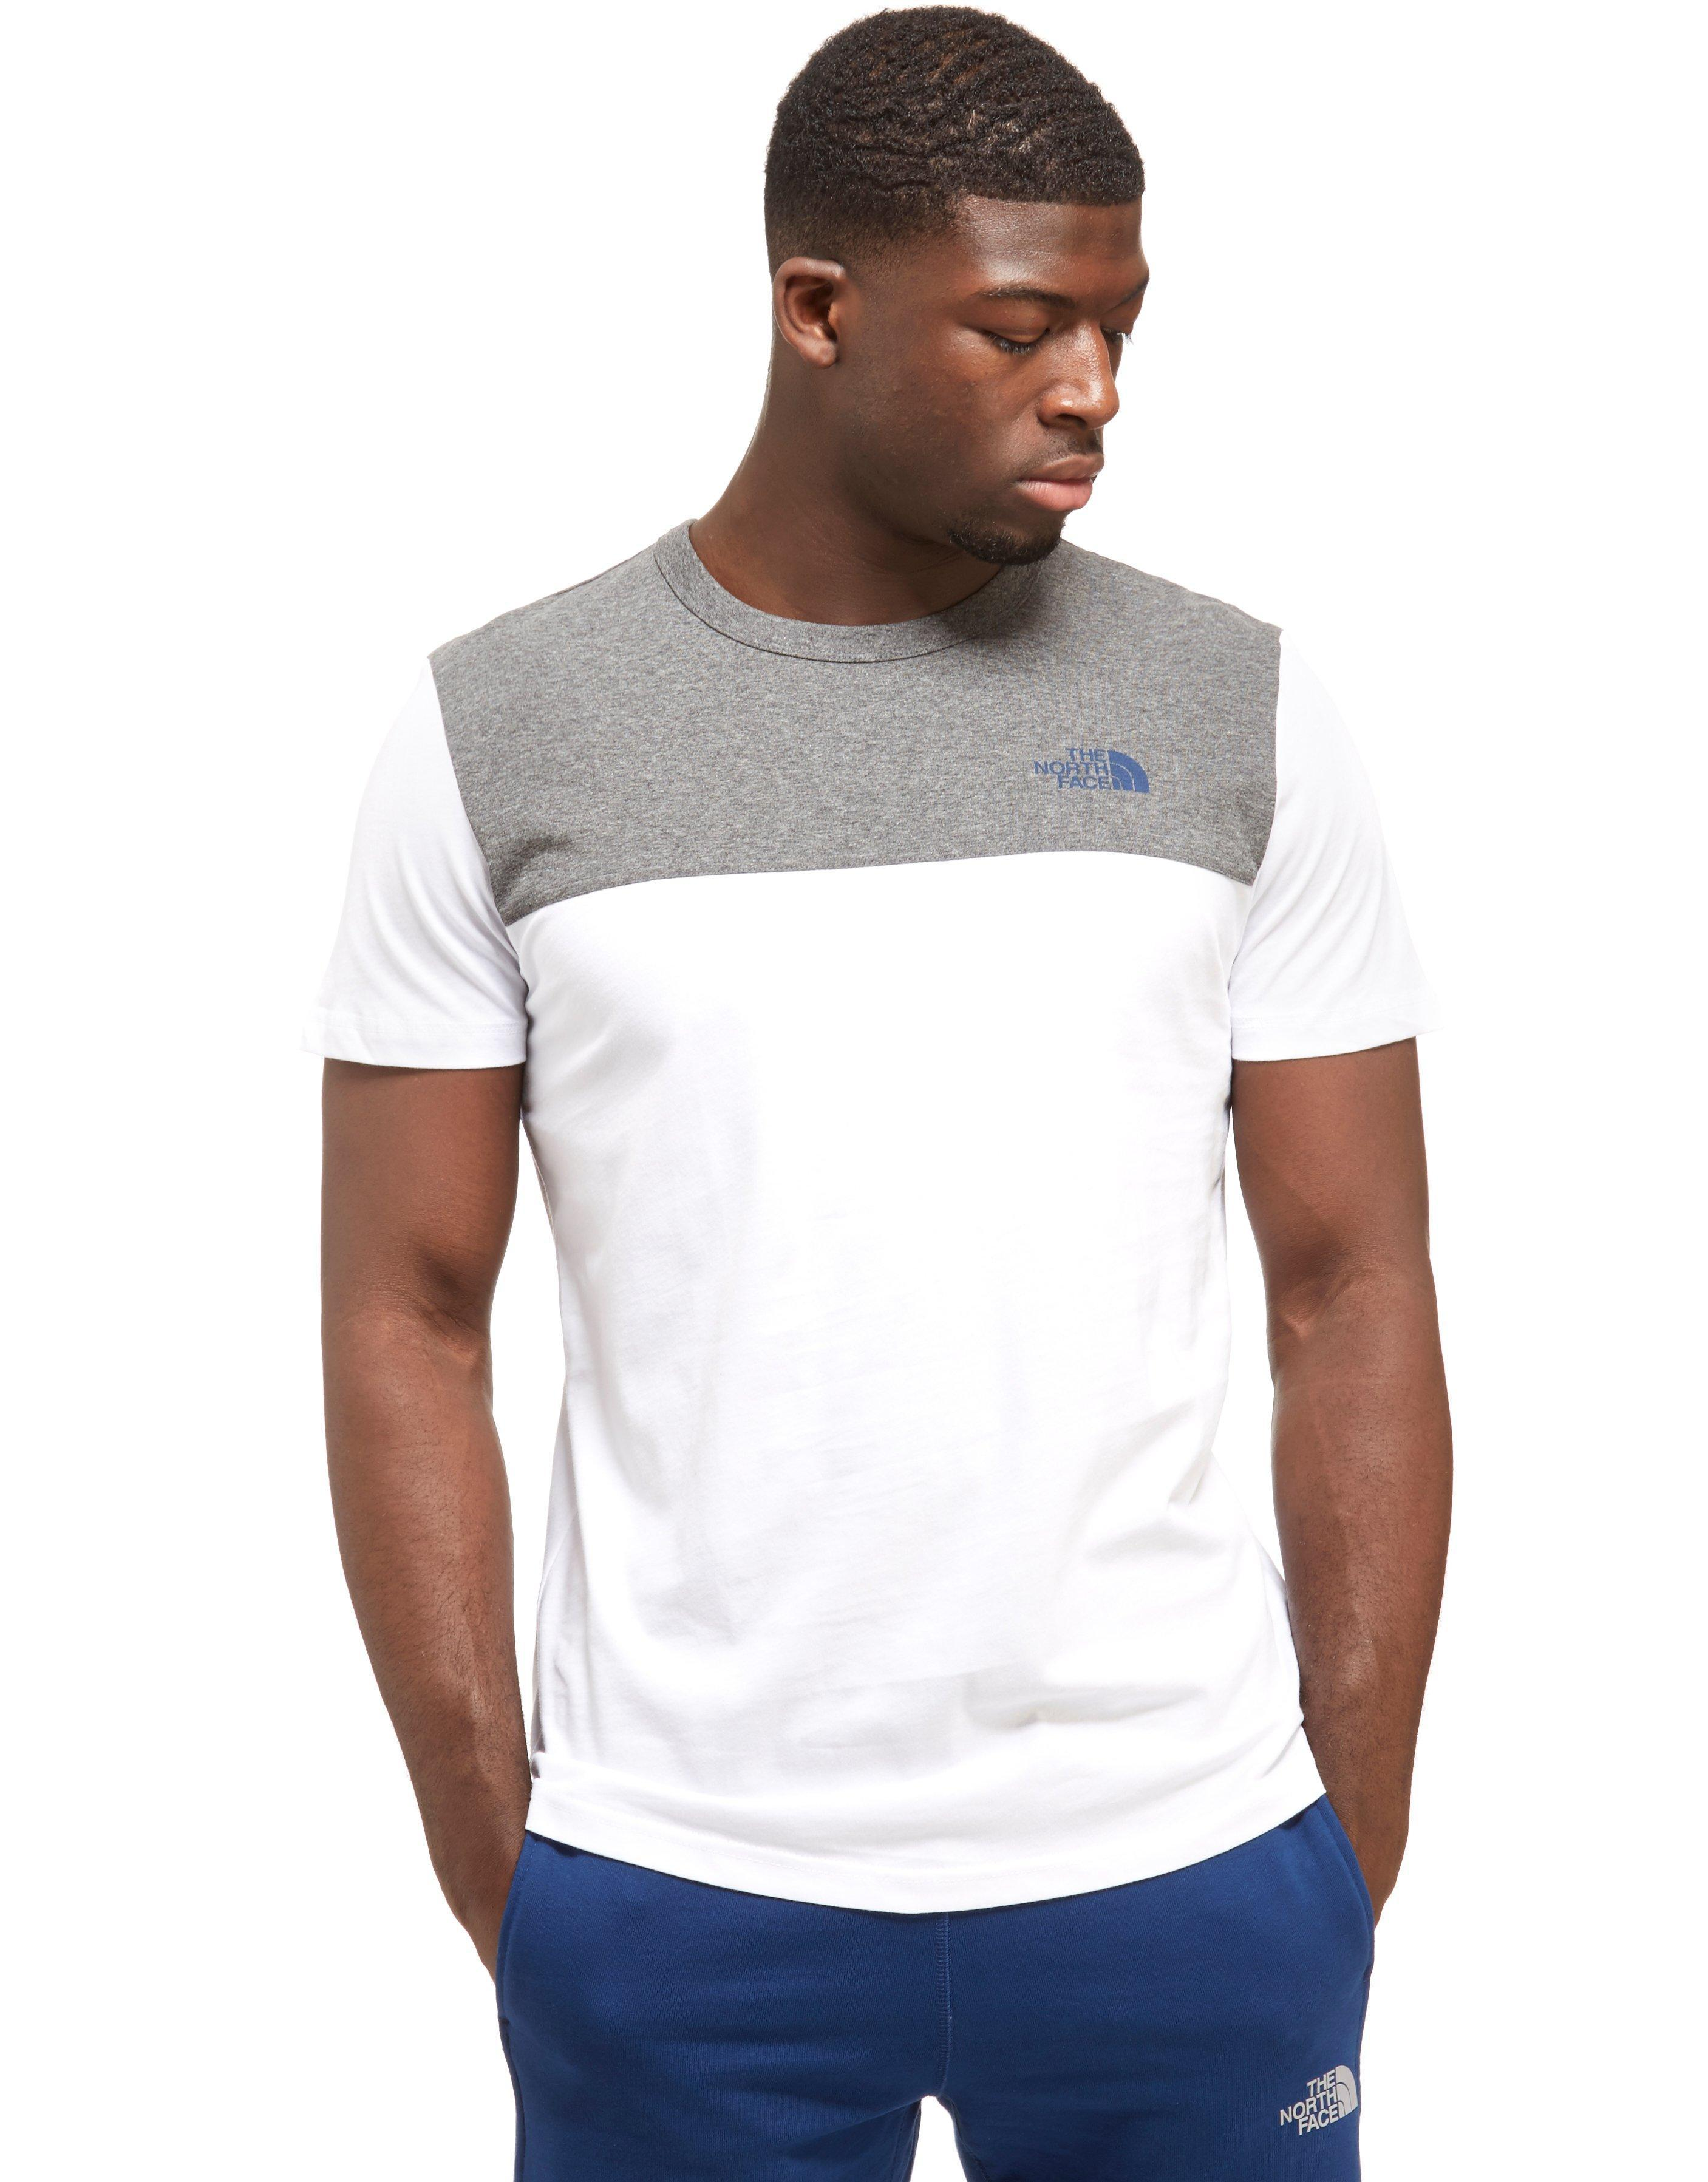 593bec6a Lyst - The North Face Colour Block T-shirt in Gray for Men